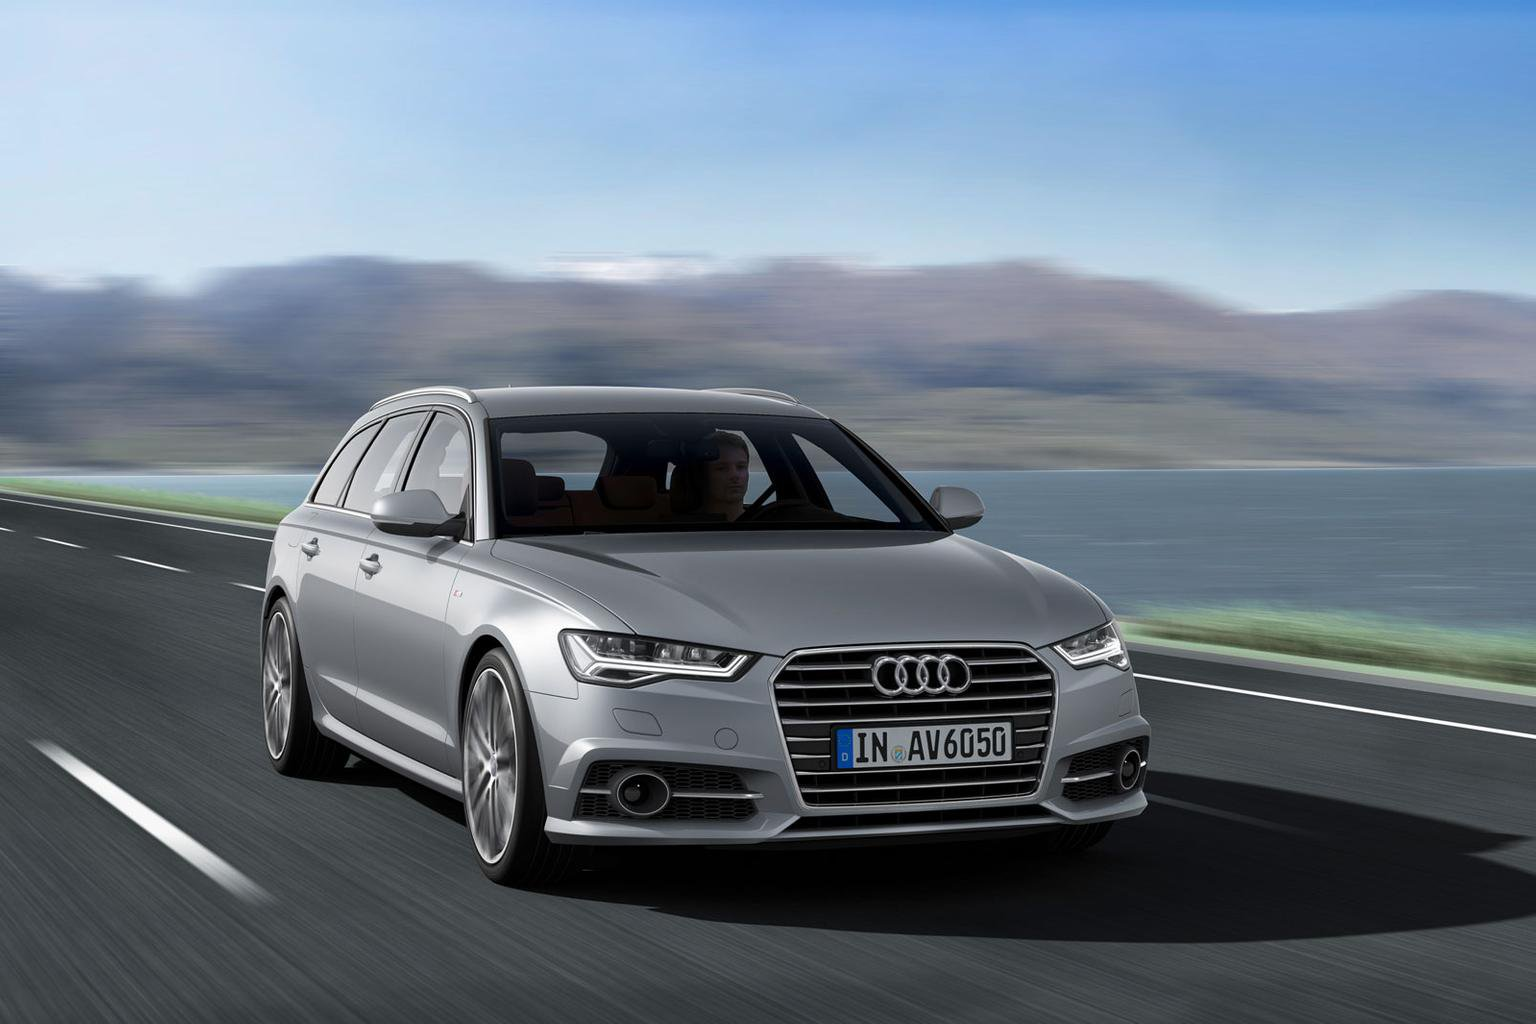 Deal of the day: Audi A6 Avant Ultra